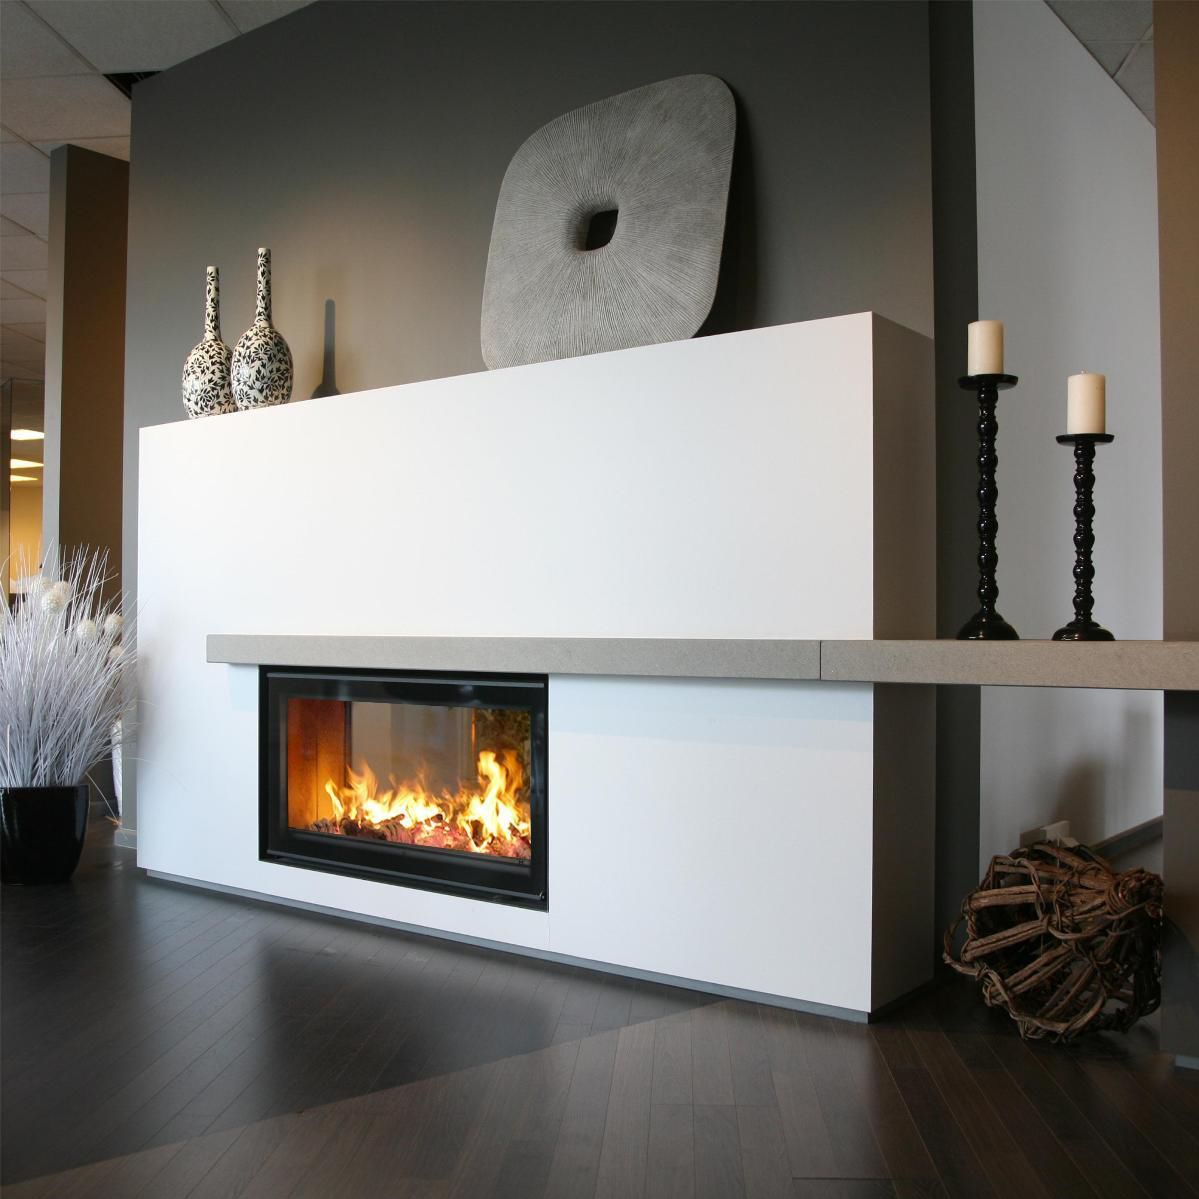 Discover all the information about the product Wood-burning fireplace insert / double-sided VENUS 850D GREEN PLUS - M-Design and find where you can buy it. Contact the manufacturer directly to receive a quote.